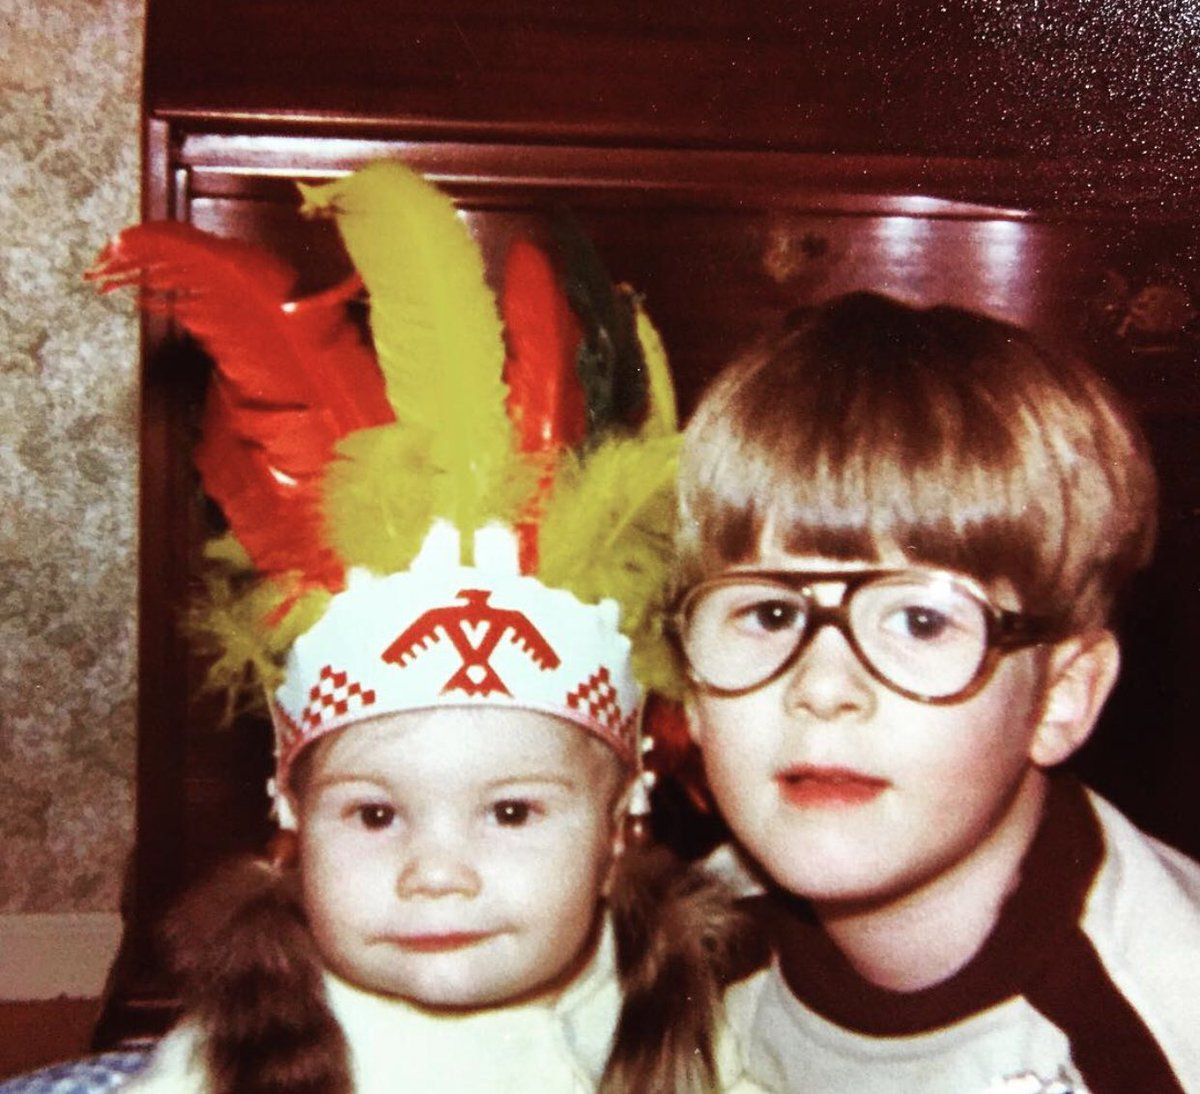 FLASHBACK Friday to myself as a 6 year old boy (and yes my little brother is wearing a headdress ) #flashbackfriday #flashback #myselfasachild #throwback #rewindtime #mybrotherandi #headdress #glennhetrick @glenn_hetrick_ #the80s #glasses #oldschool #glassesboy #6yearold<br>http://pic.twitter.com/TIf2wQo9V0